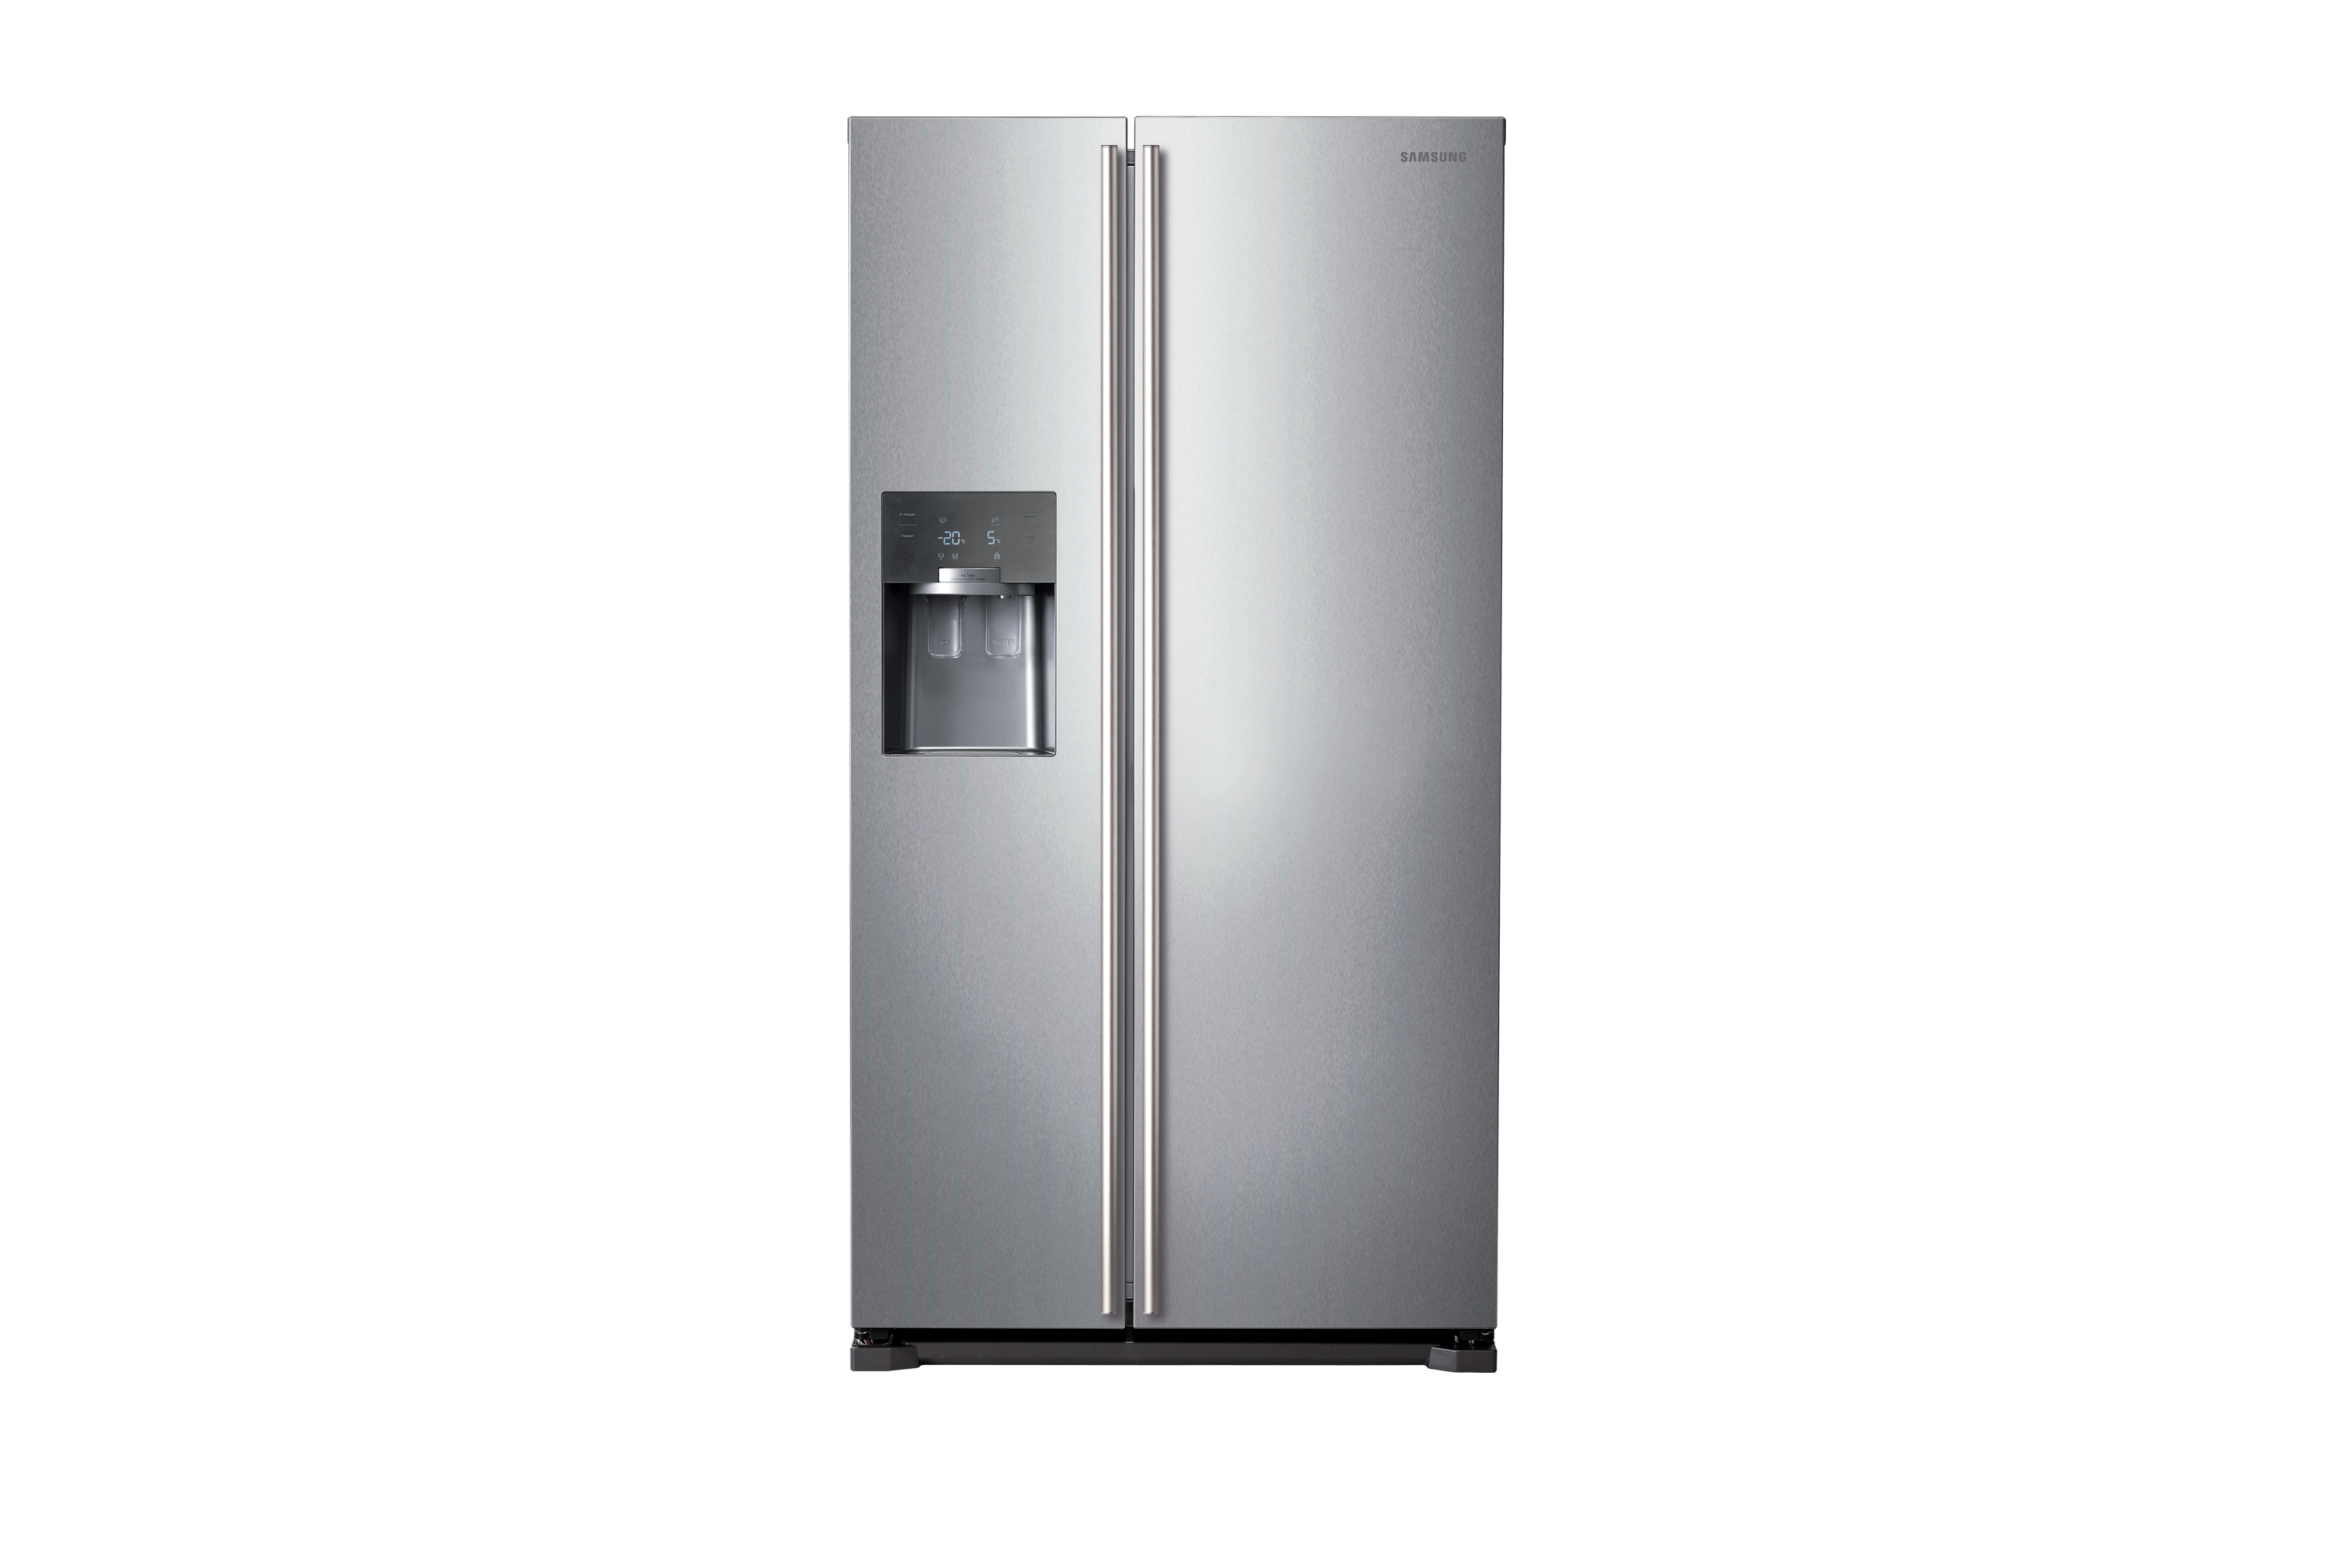 RS7567BHCSP RS7567BHCSP H Series Side by Side Refrigerator